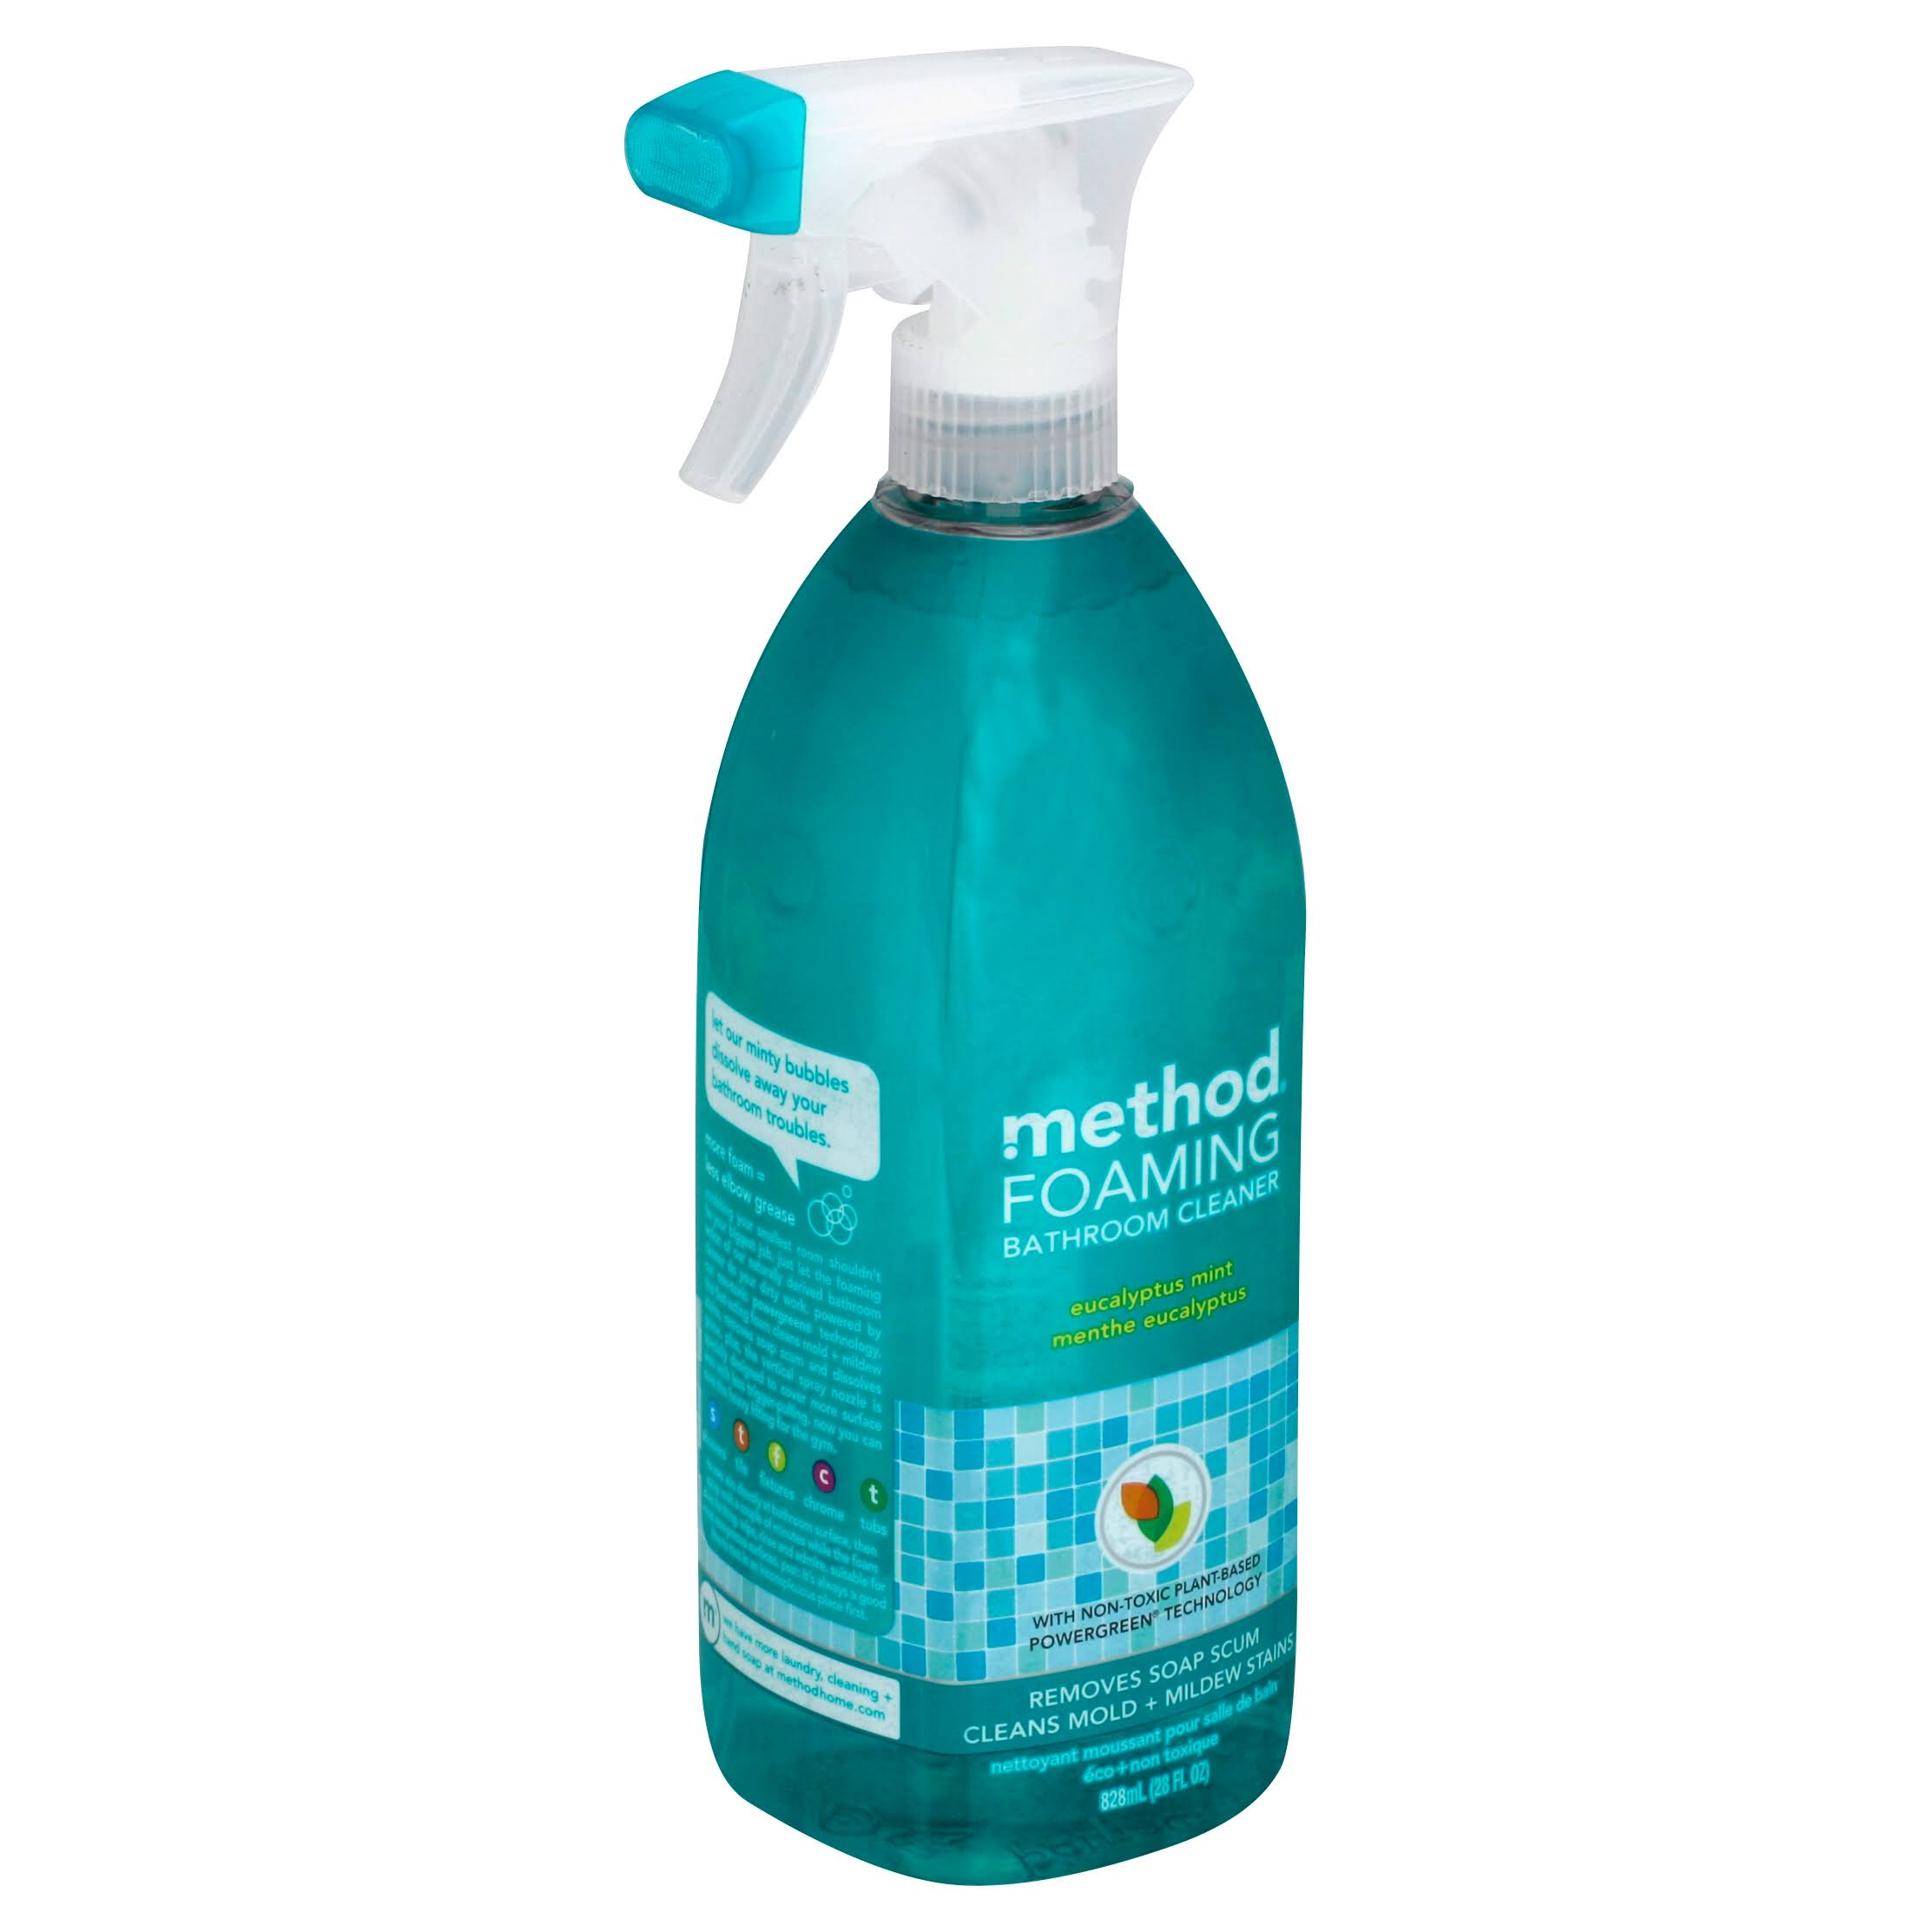 Method Foaming Bathroom Cleaner - Eucalyptus Mint